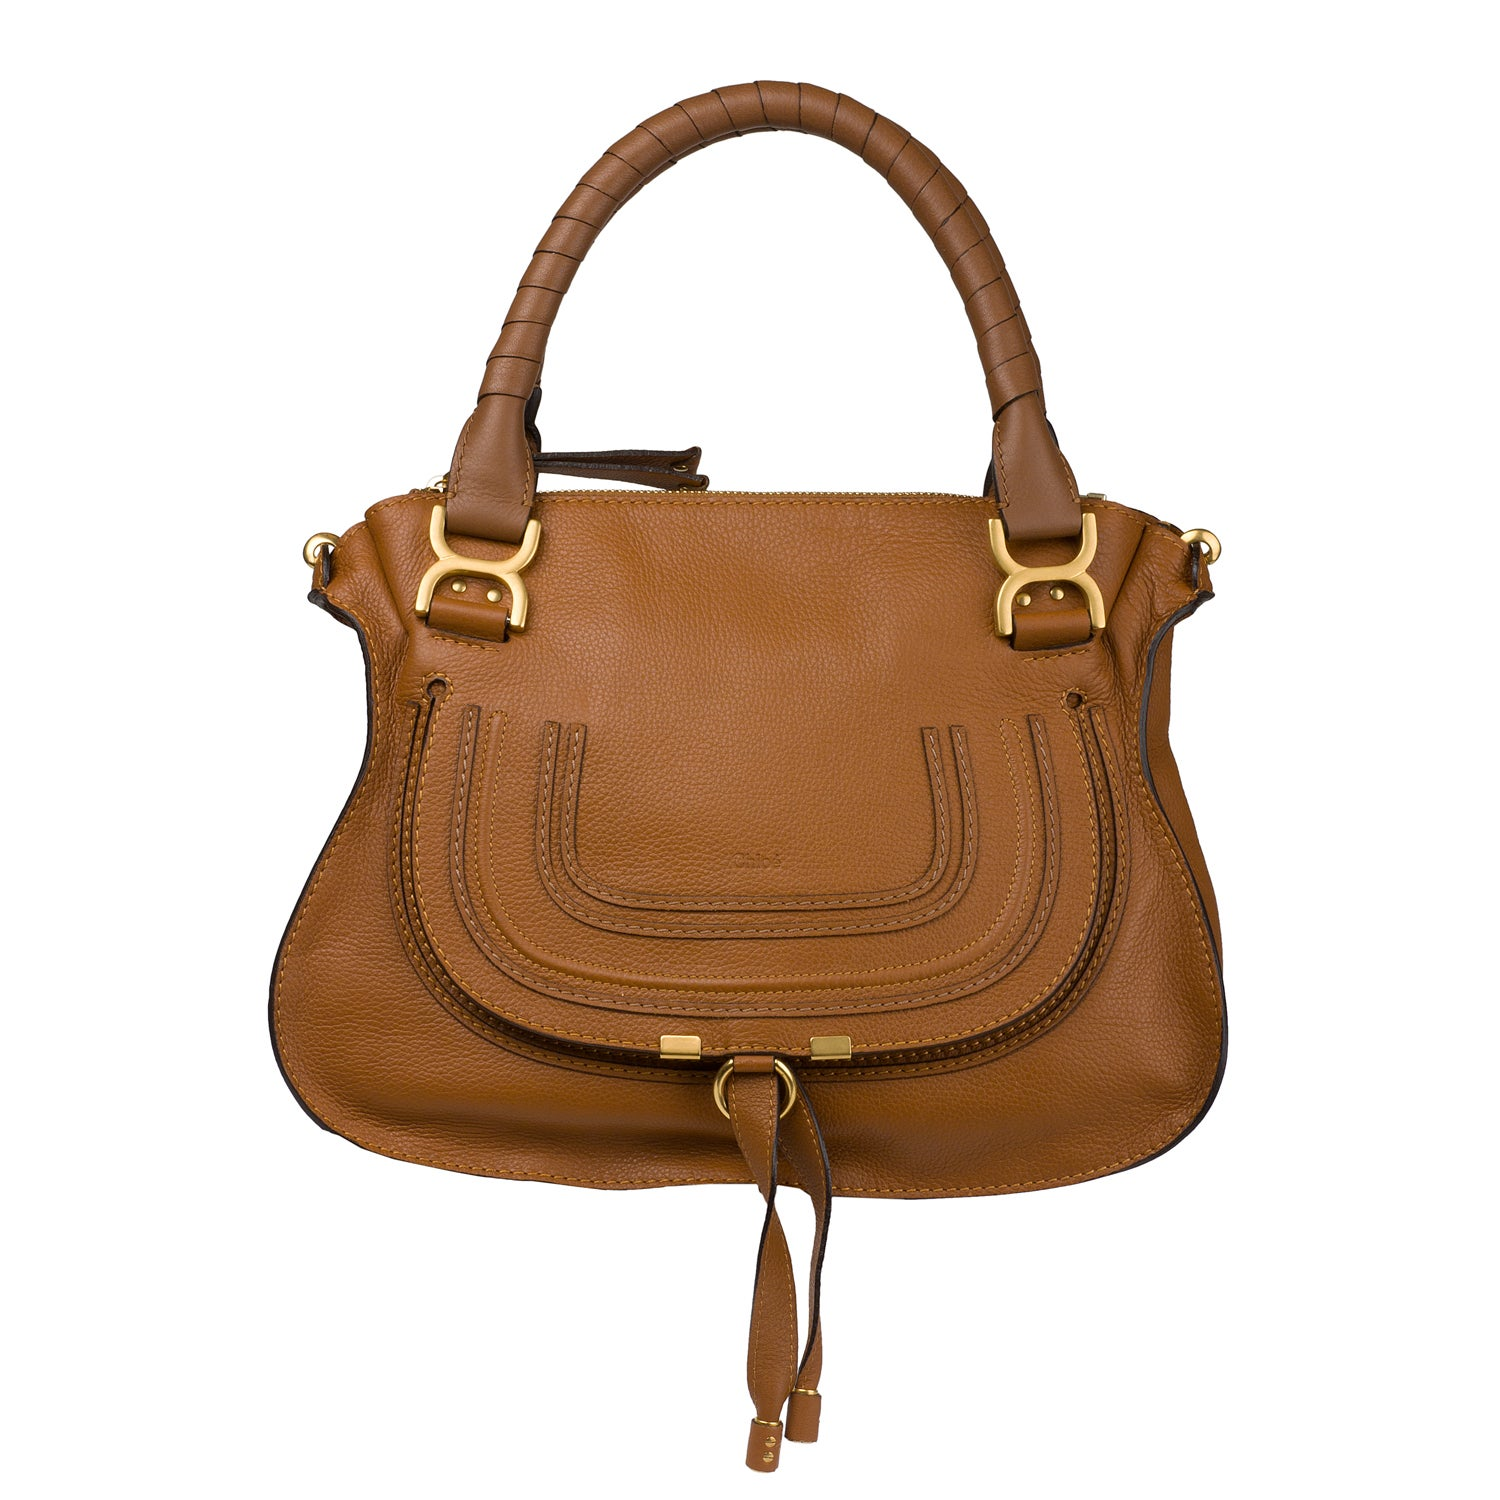 Chloe Small Marcie Satchel